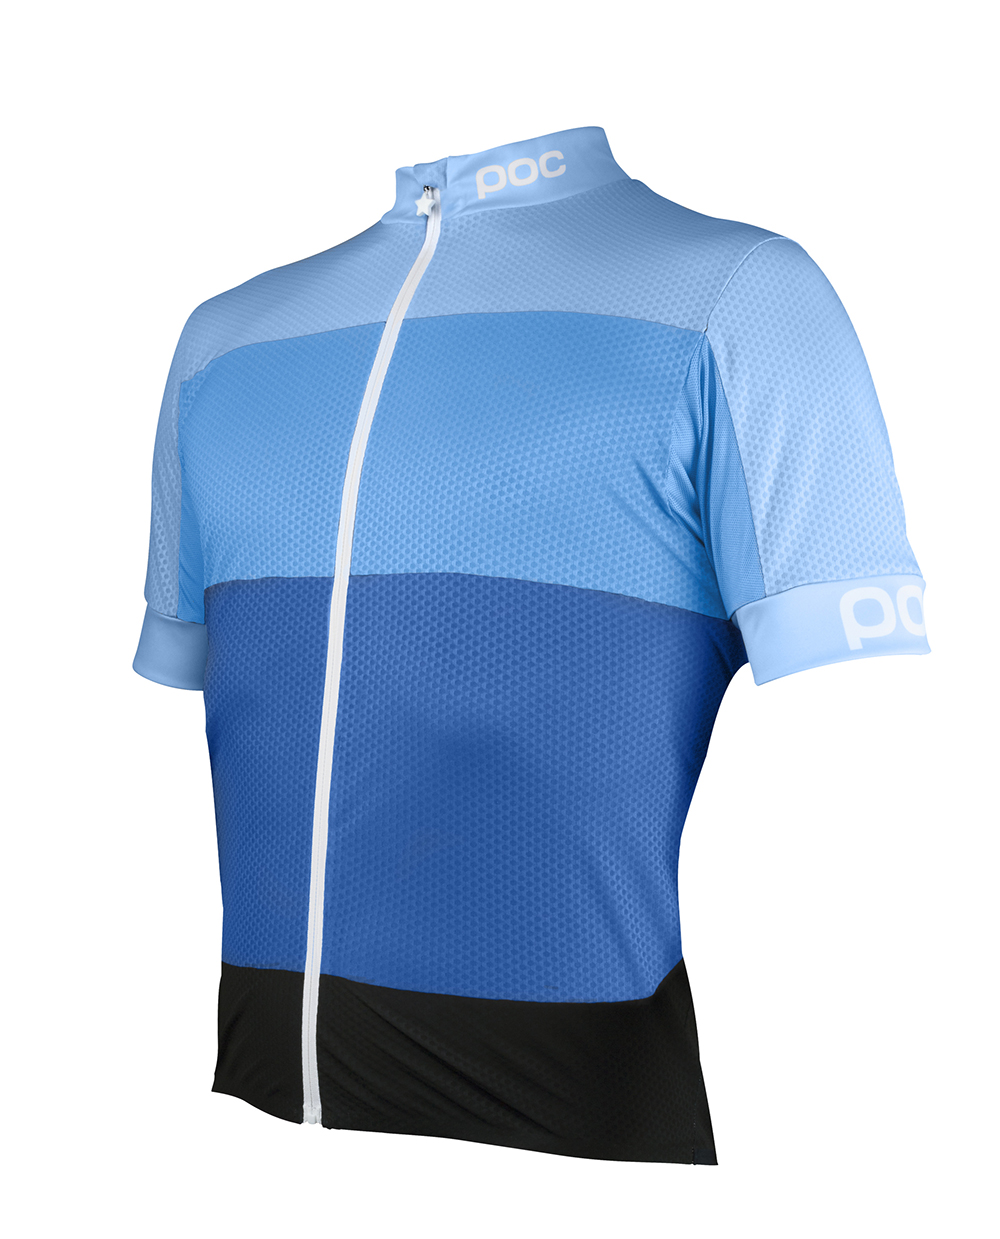 Light Jersey in Seaborgium Multi Blue